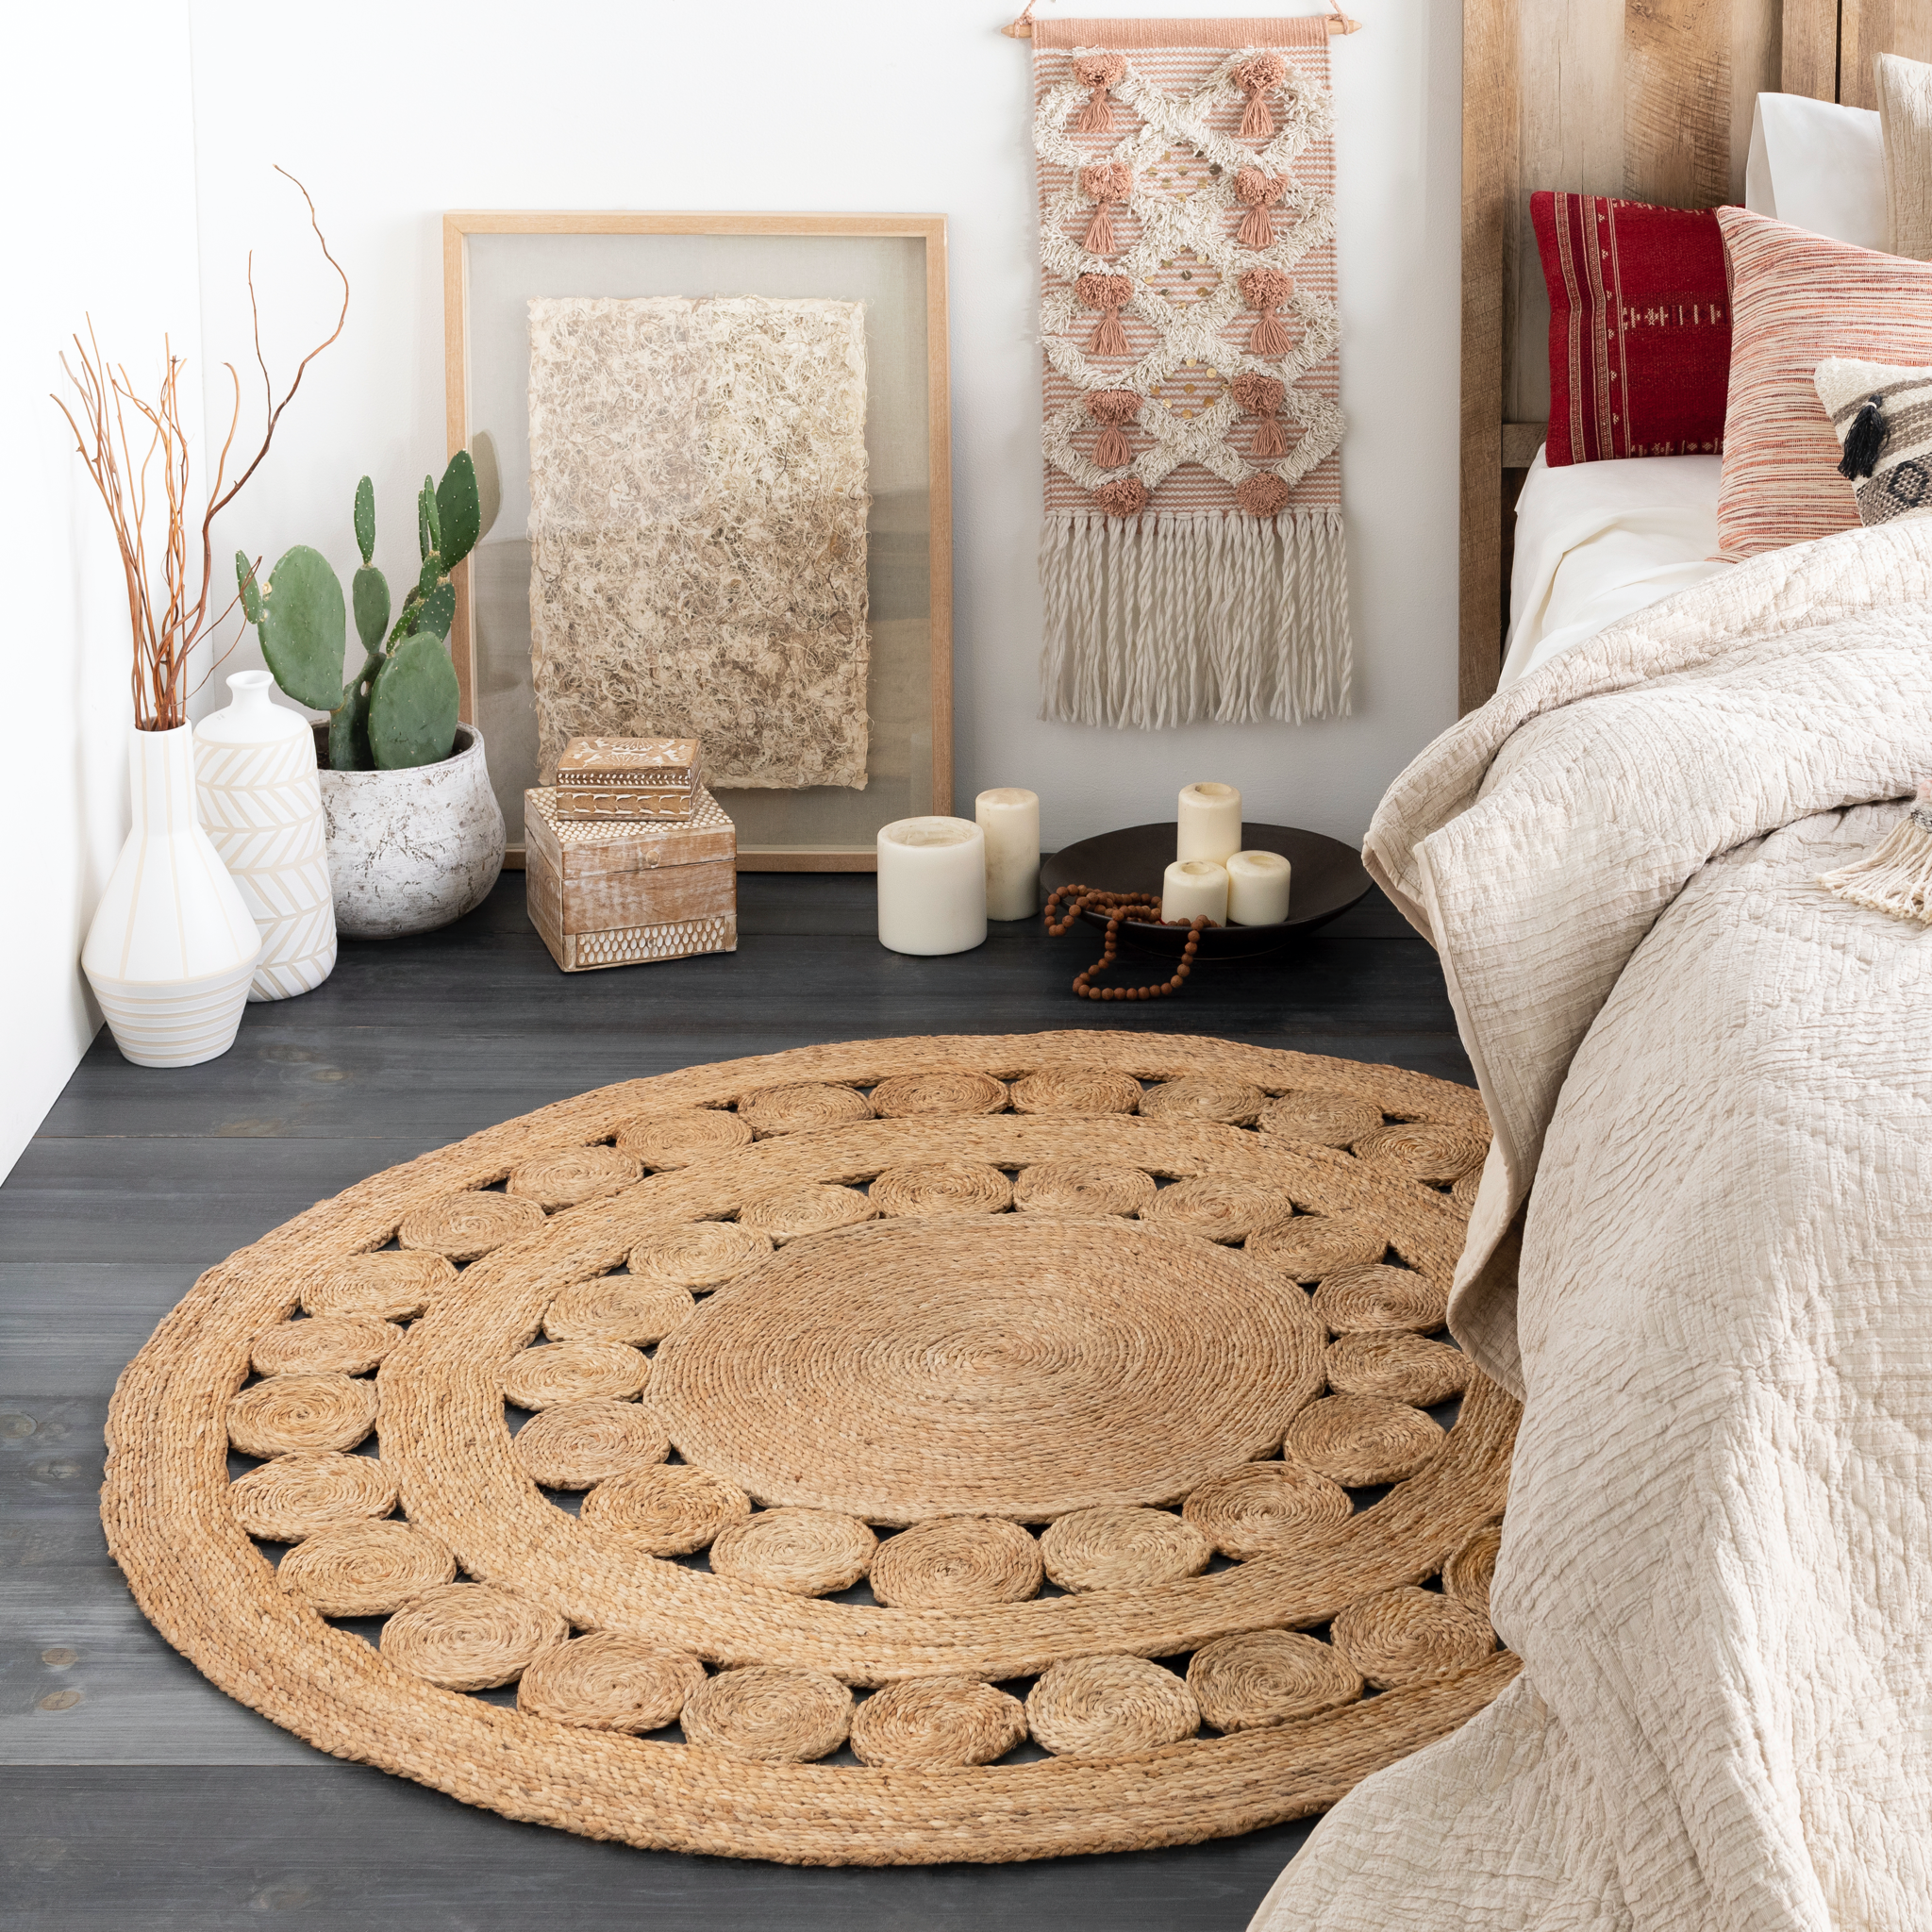 Round Jute Woven Rug In 2020 Jute Round Rug Jute Rug Living Room Rugs In Living Room